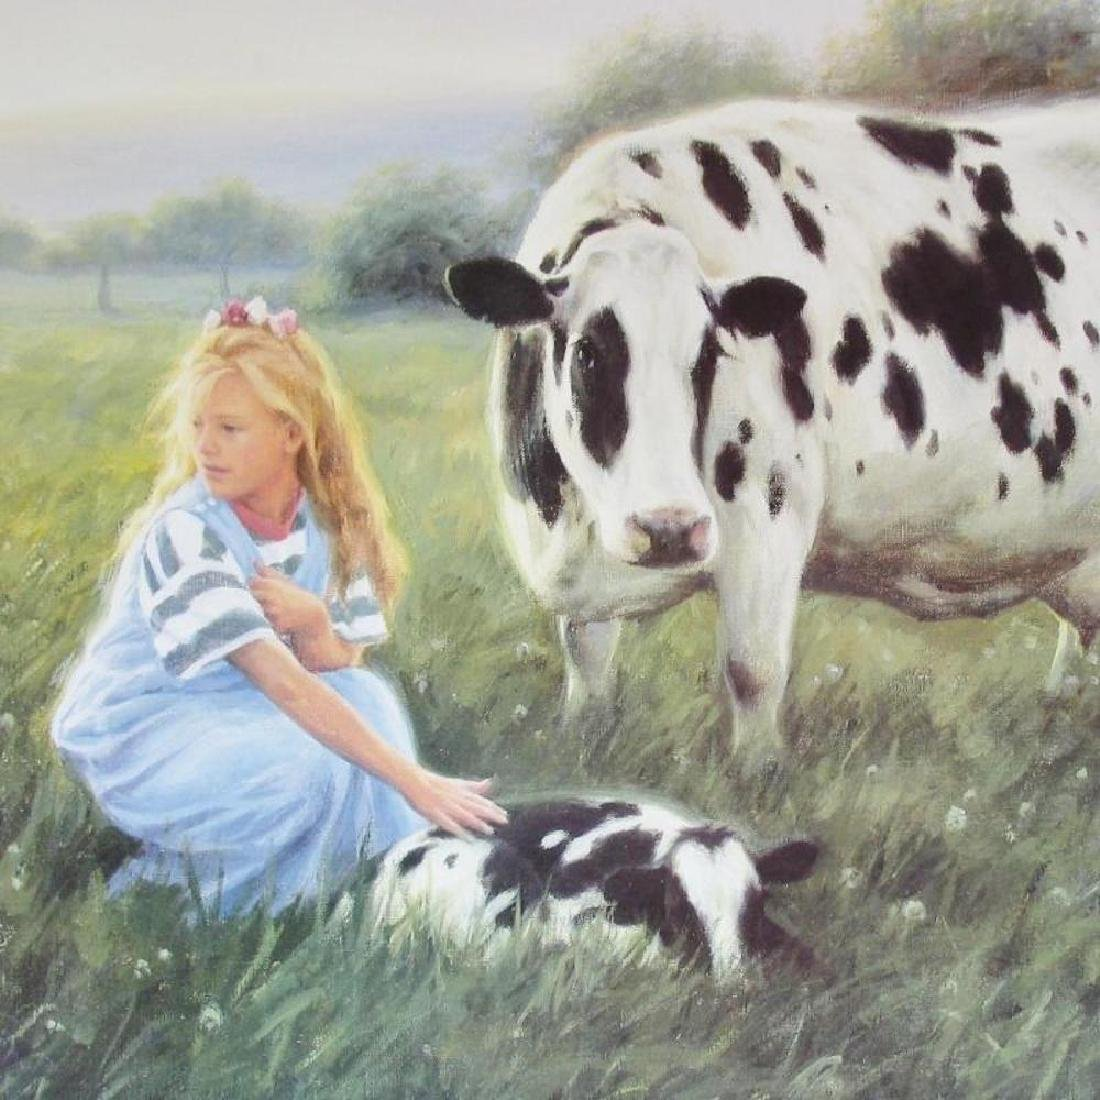 Little Girl With Baby Cow & Mother On Farm - 3